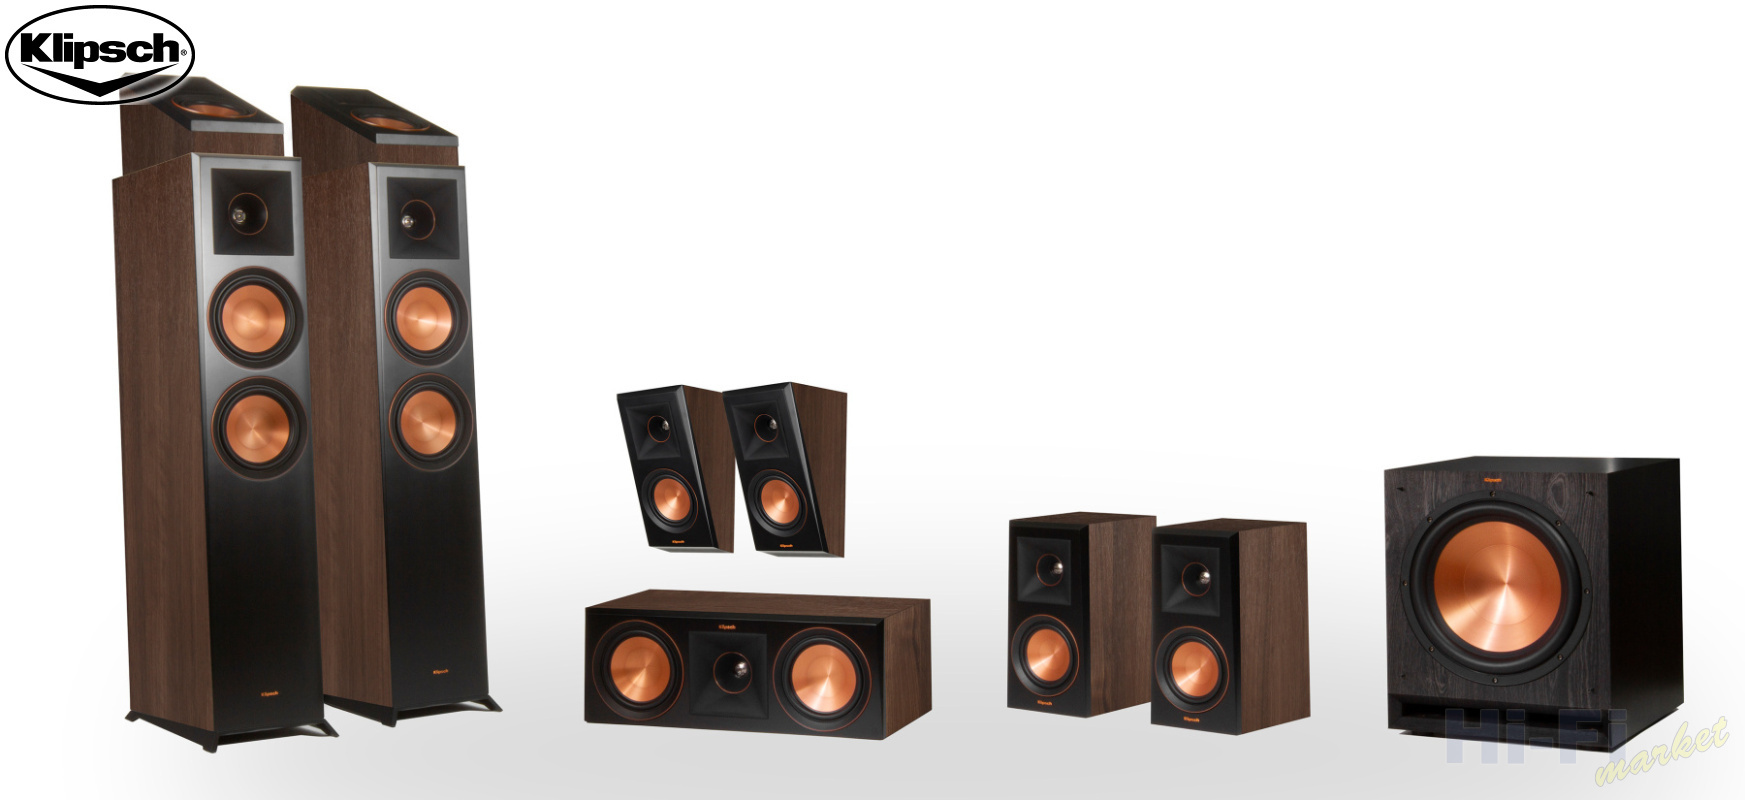 KLIPSCH Reference Premiere RP-6000F set 7.1.2 Dolby Atmos